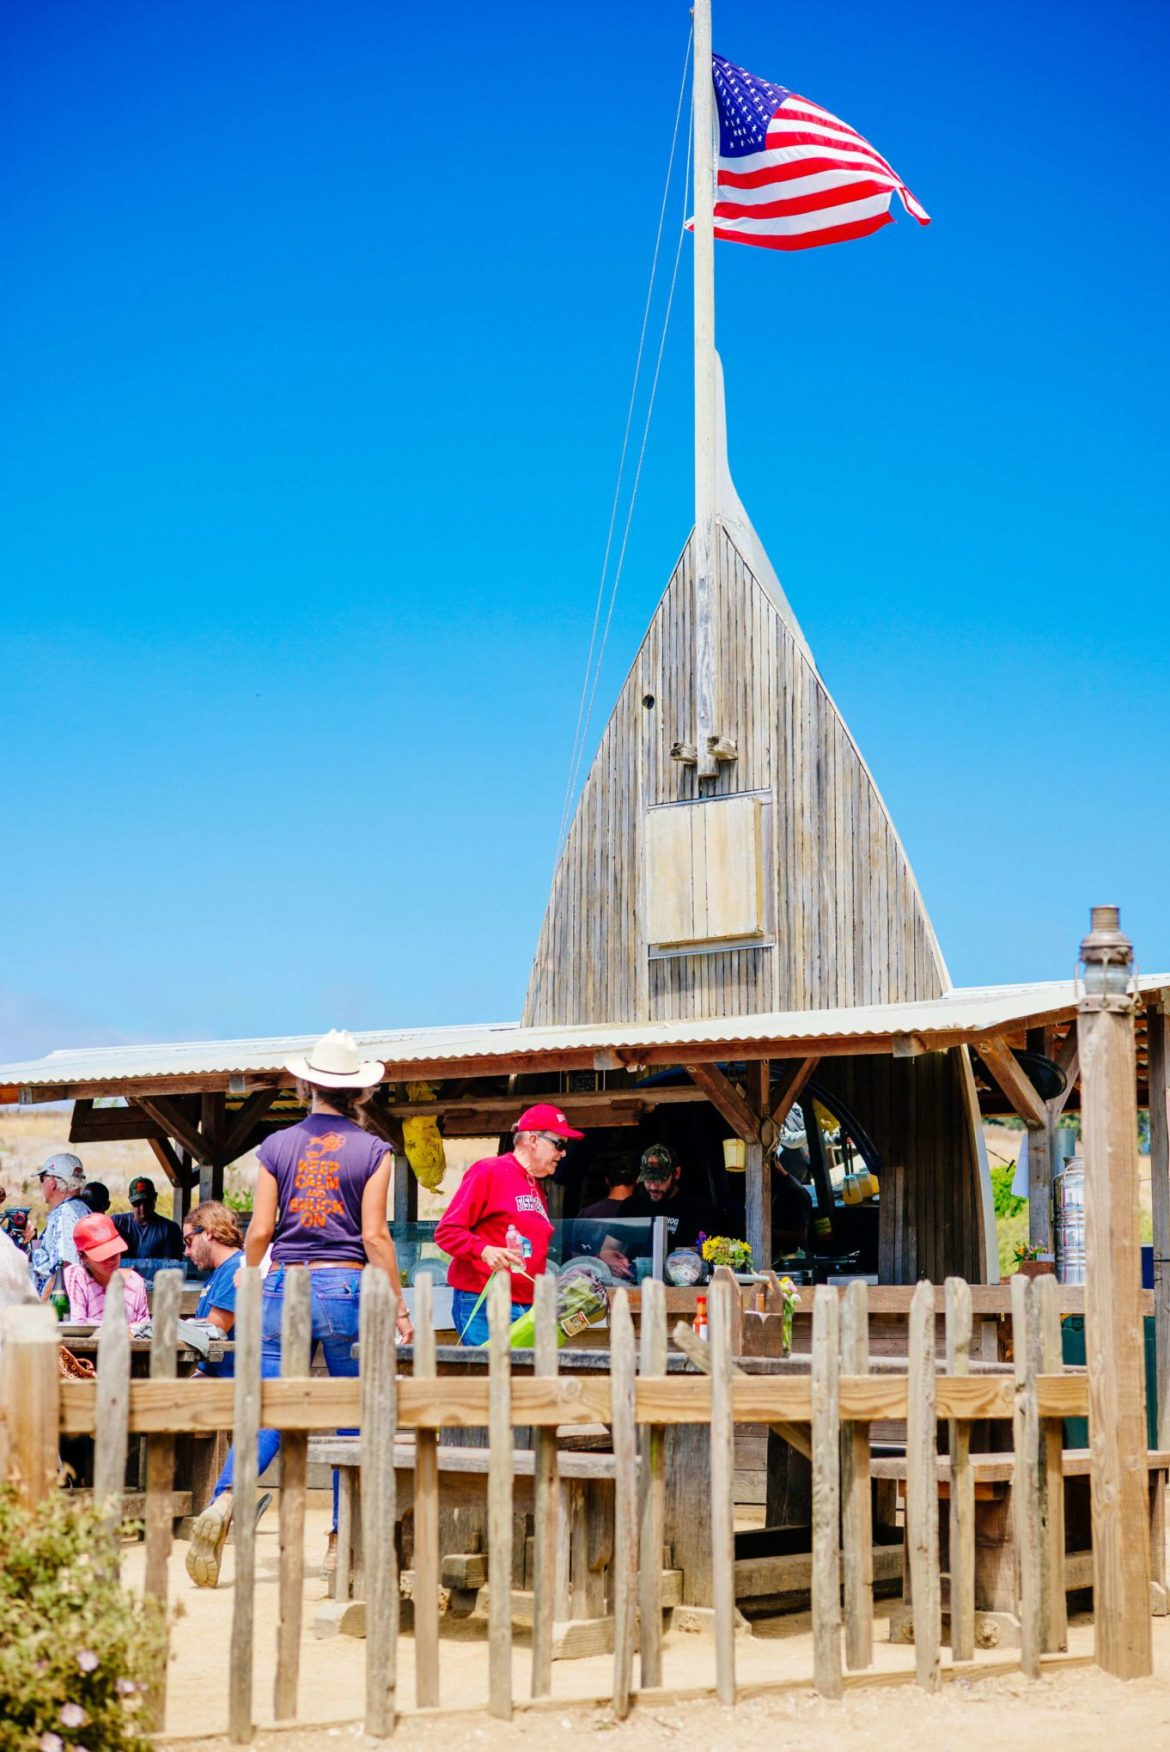 The Boat House at Hog Island Oyster Farm in Marshall, Ca - Tamales Bay